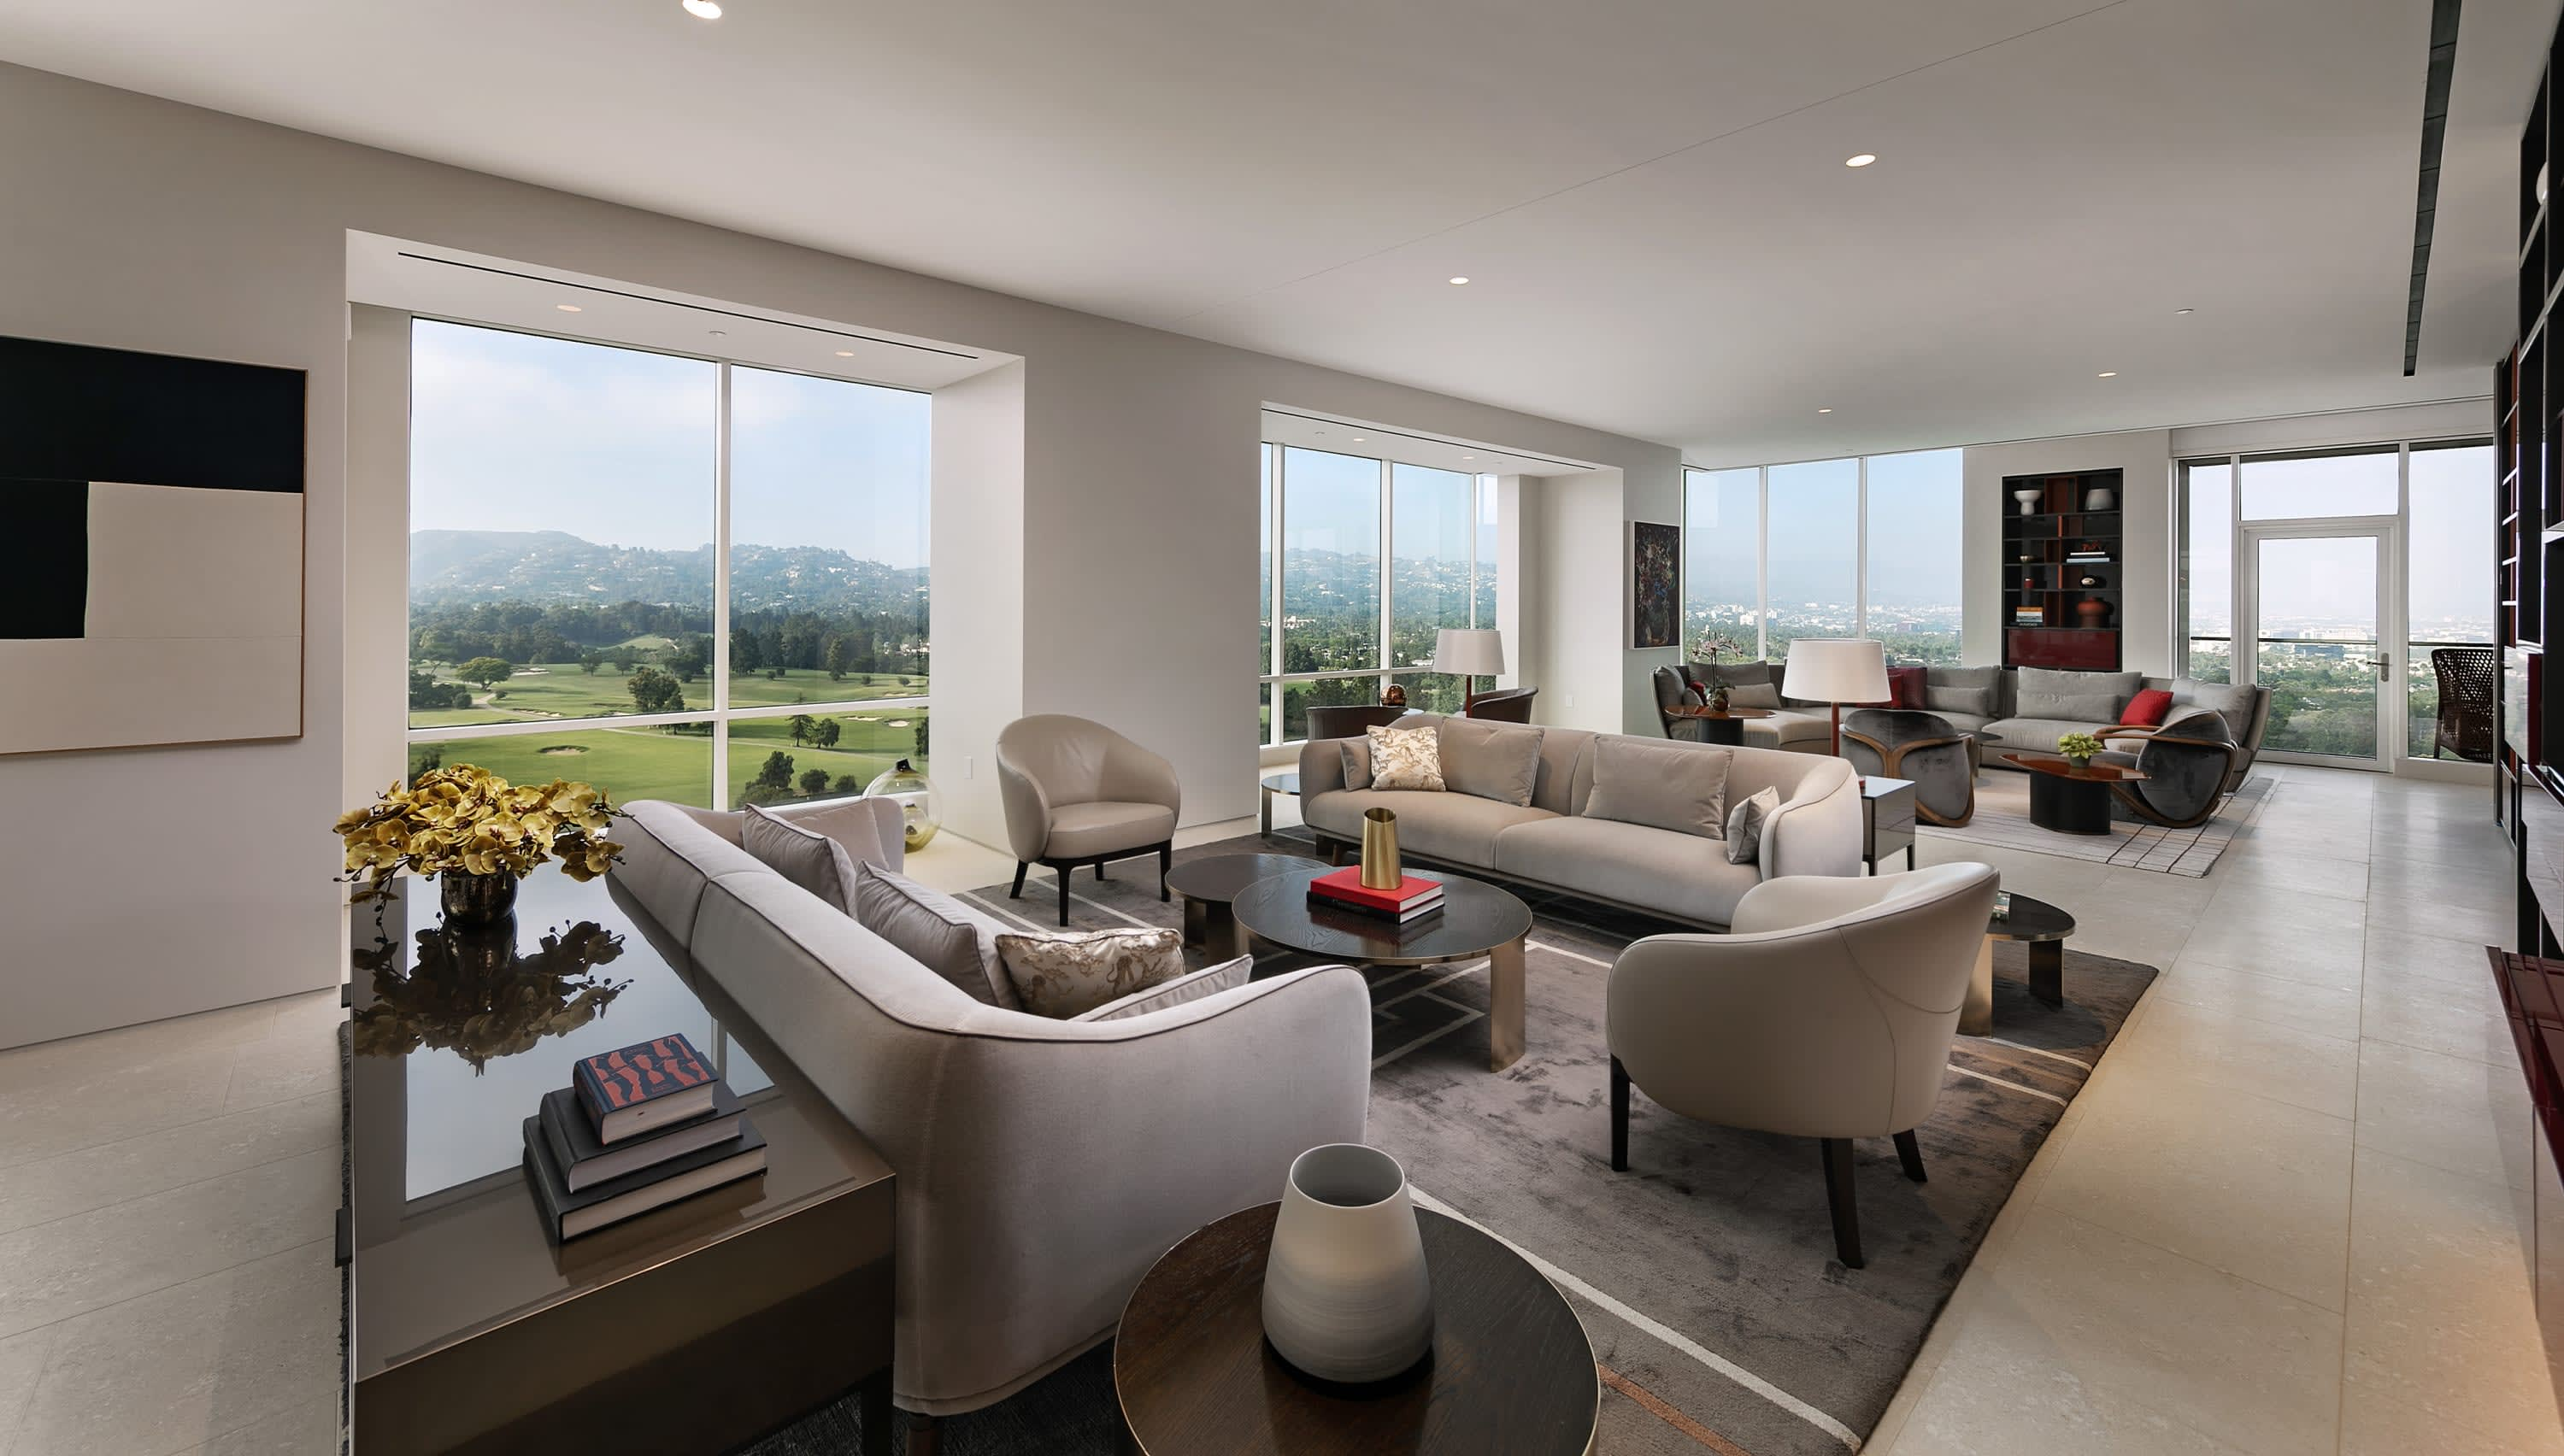 living rooms inside penthouse 19 at the beverly west in westwood, los angeles